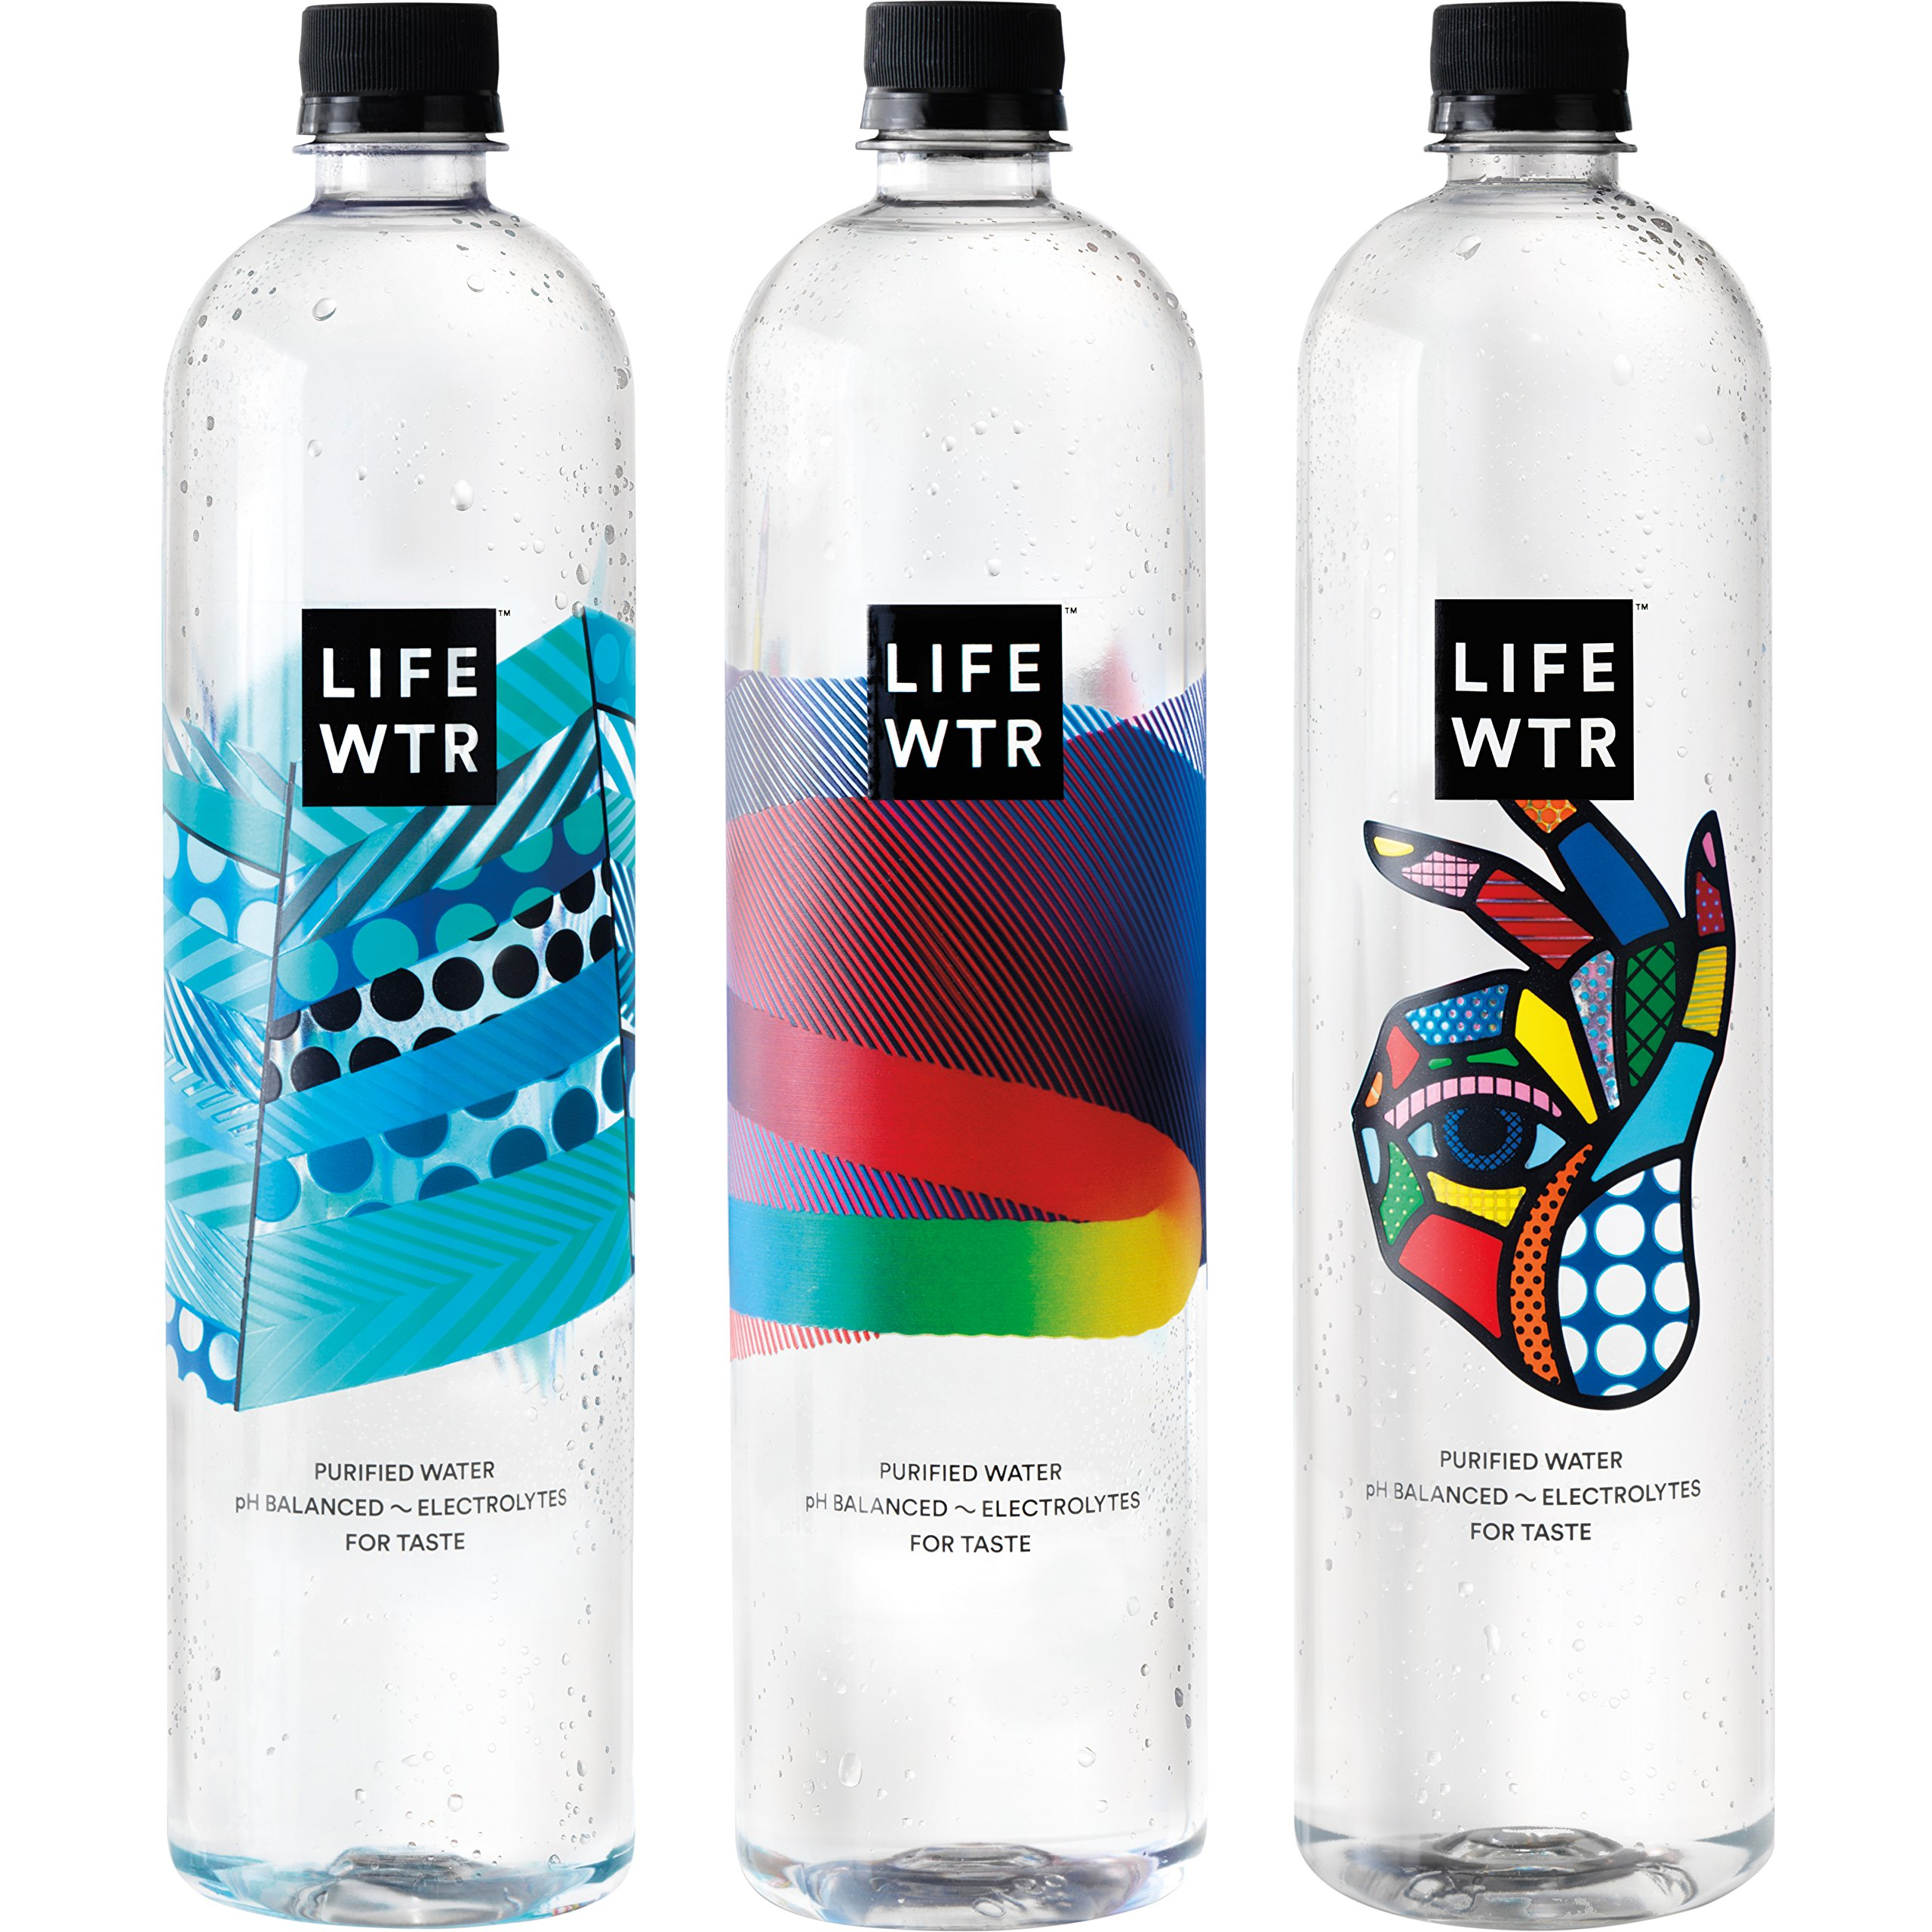 LIFEWTR, Premium Purified Water, pH Balanced with Electrolytes For Taste, 1  6.